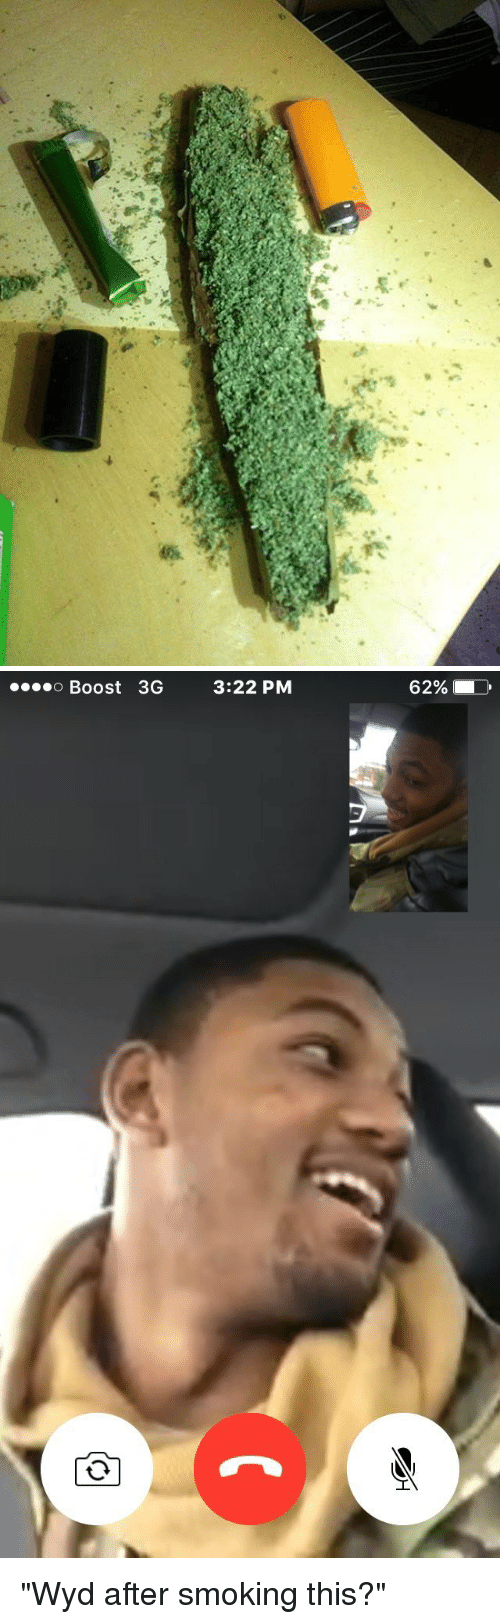 """Boost, Hood, and W-2: 。。。W:-2 ,分,   Boost 3G  3:22 PM  62% """"Wyd after smoking this?"""""""